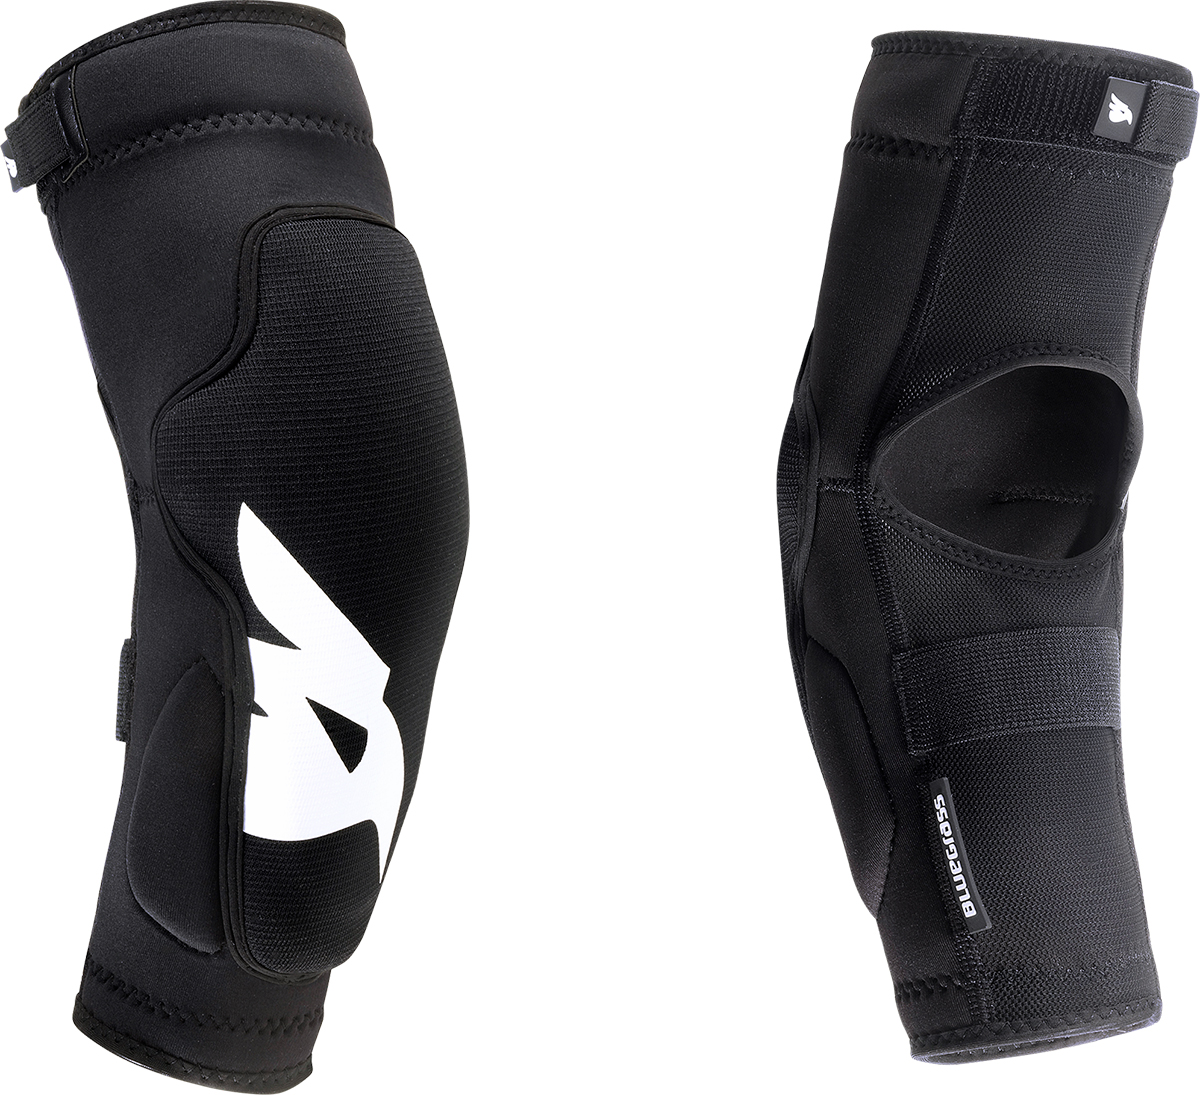 Bluegrass Solid Elbow Guards | Beskyttelse